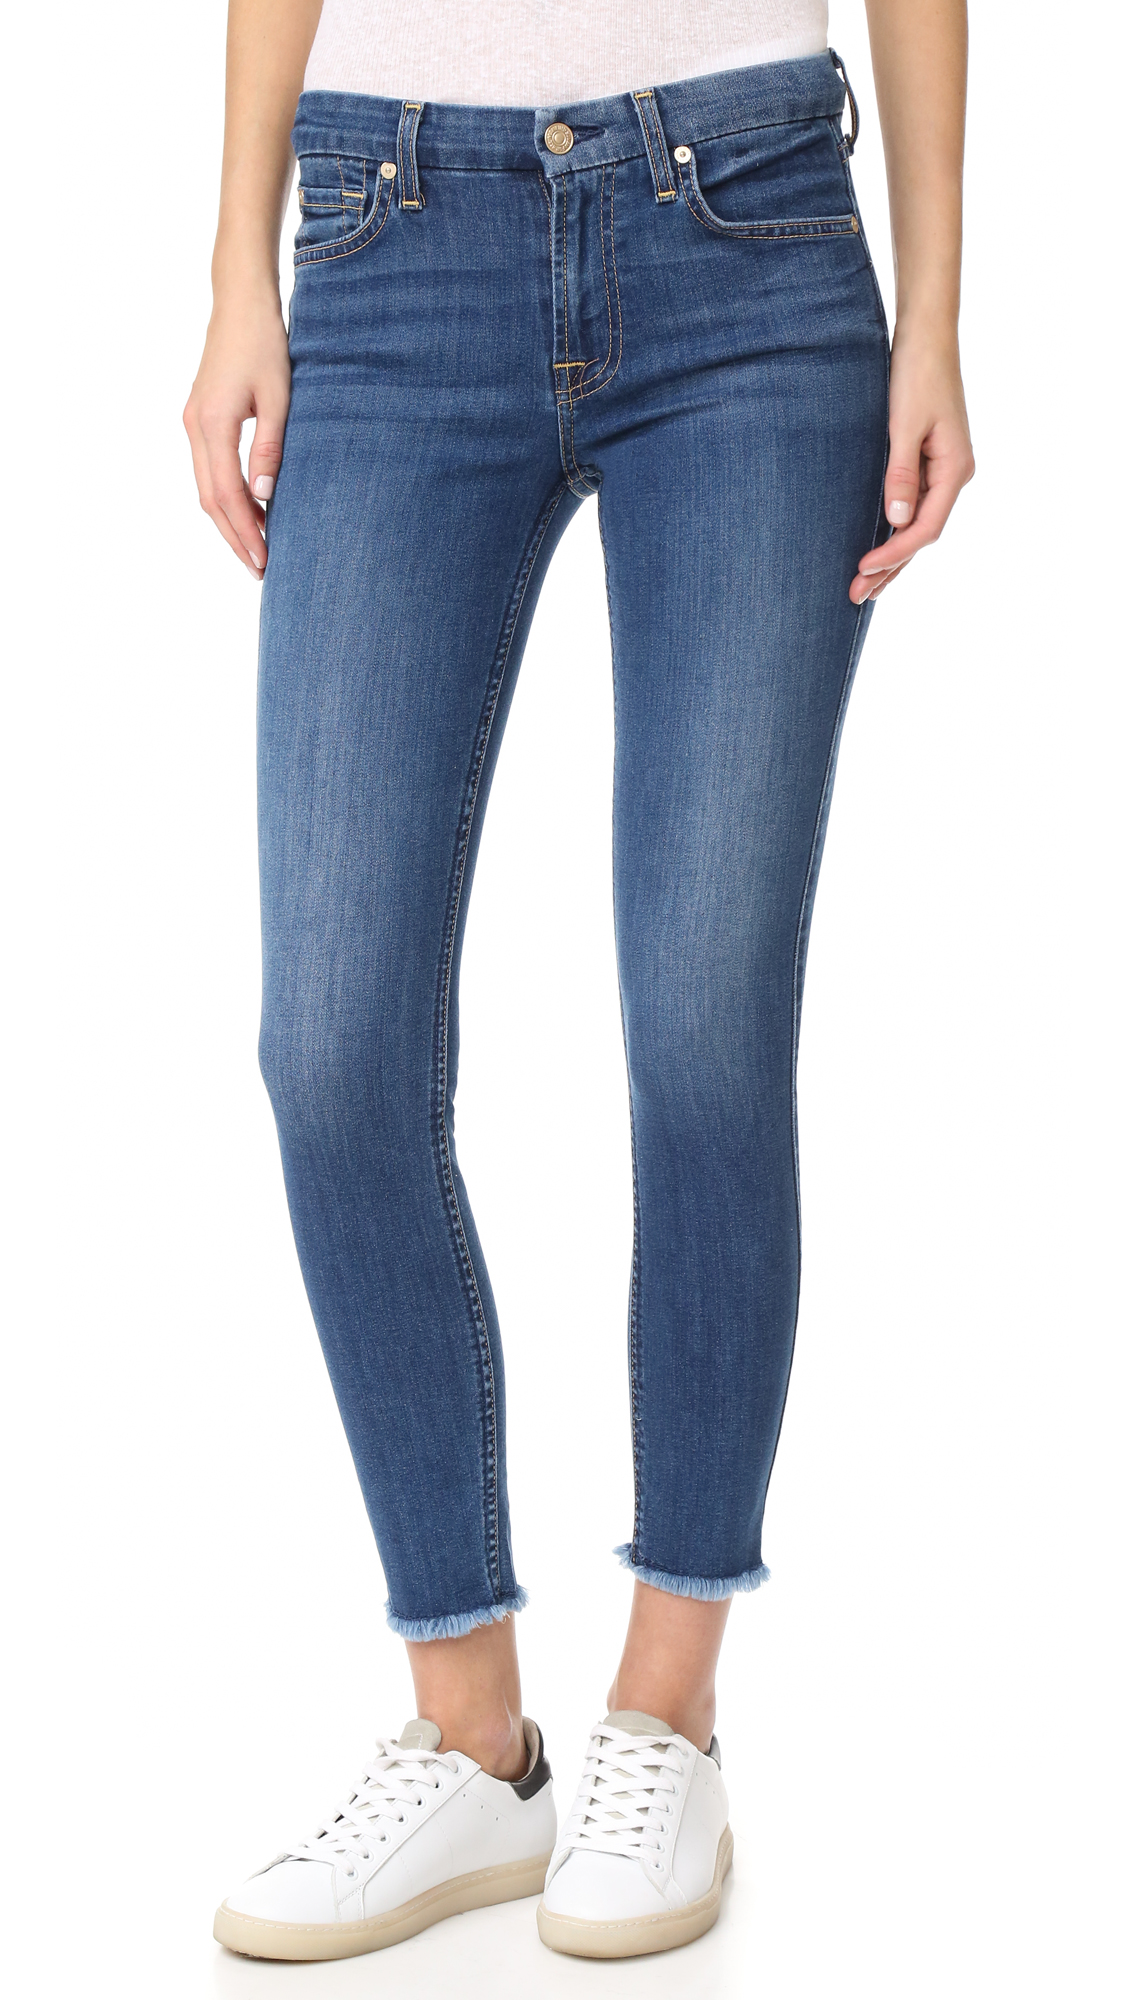 7 For All Mankind b(air) Ankle Skinny Jeans with Raw Hem